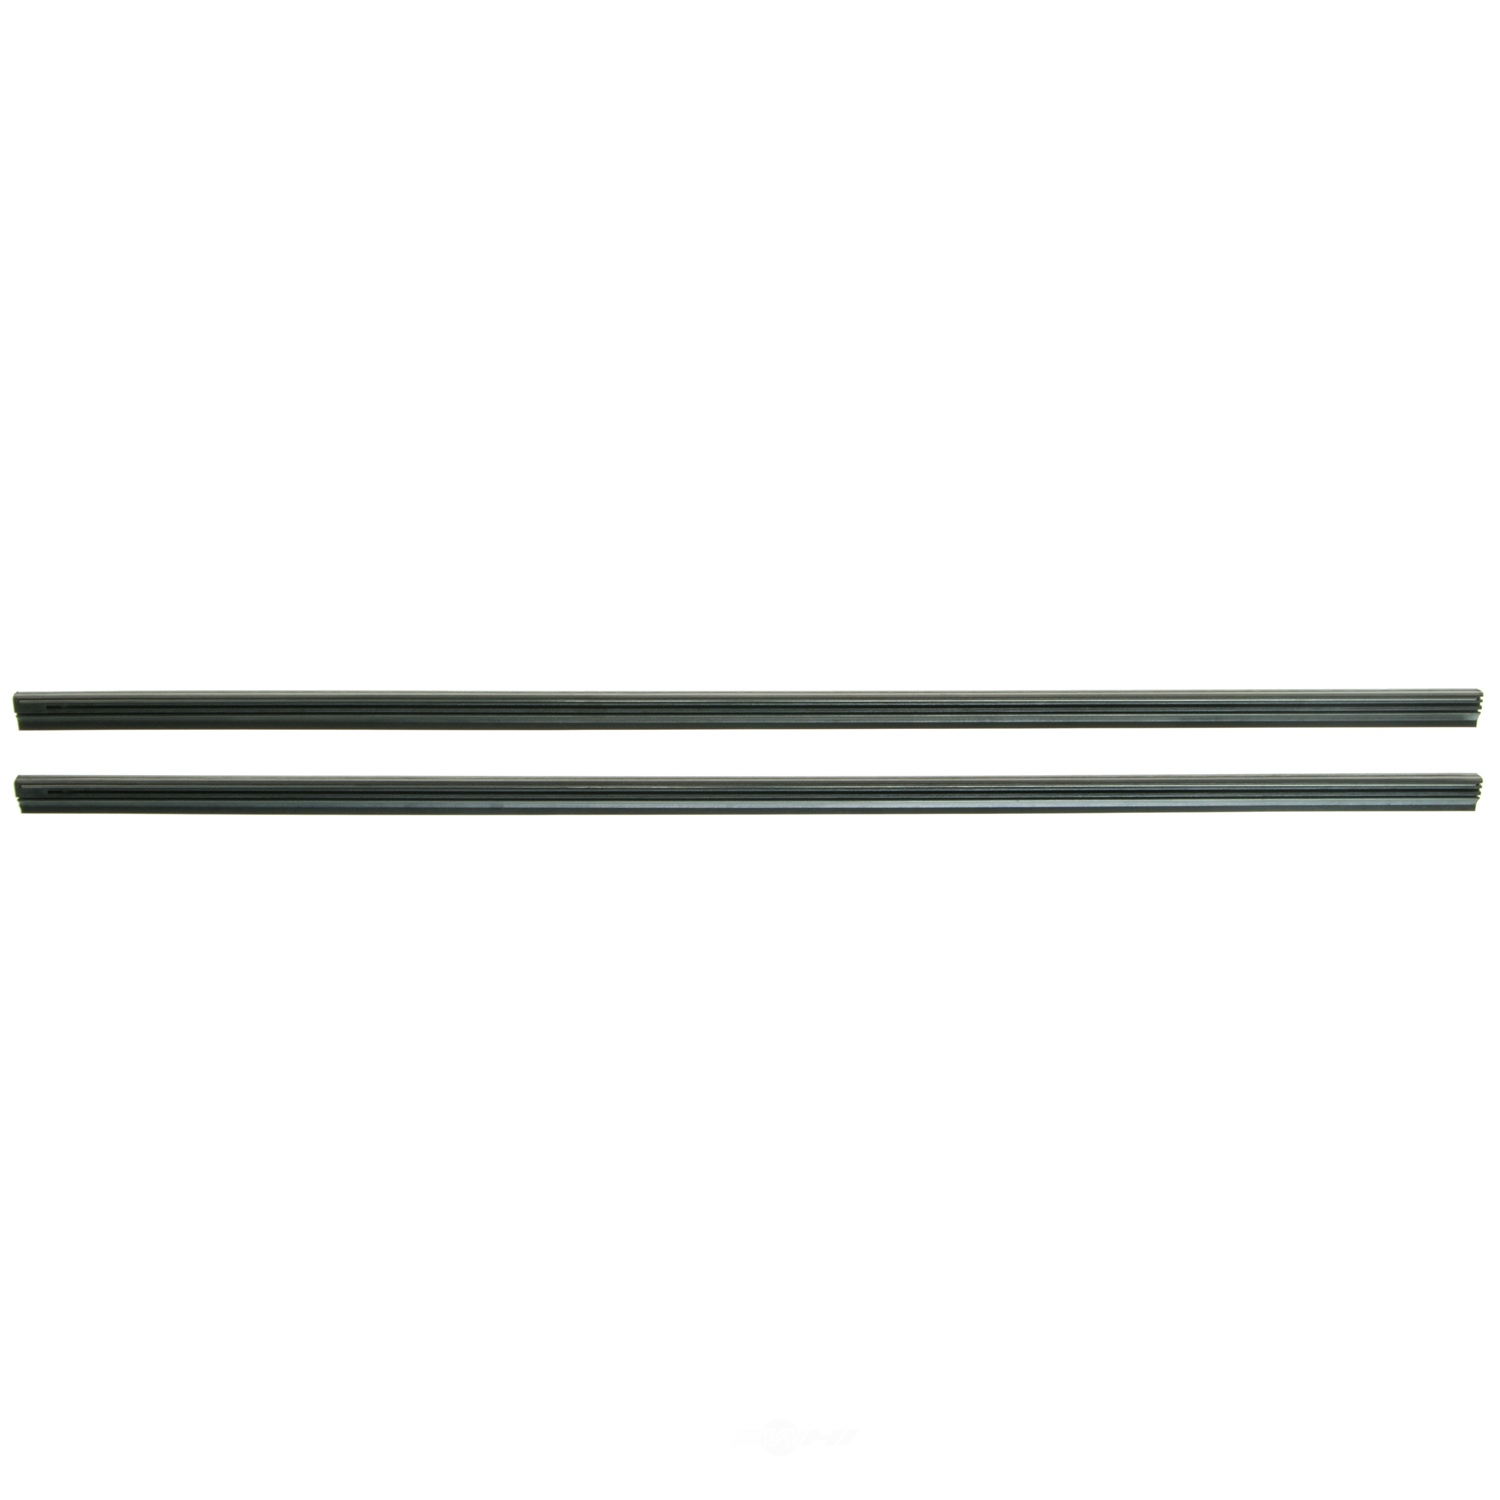 ANCO WIPER PRODUCTS - Stainless Steel Series Refills - ANC 19-19